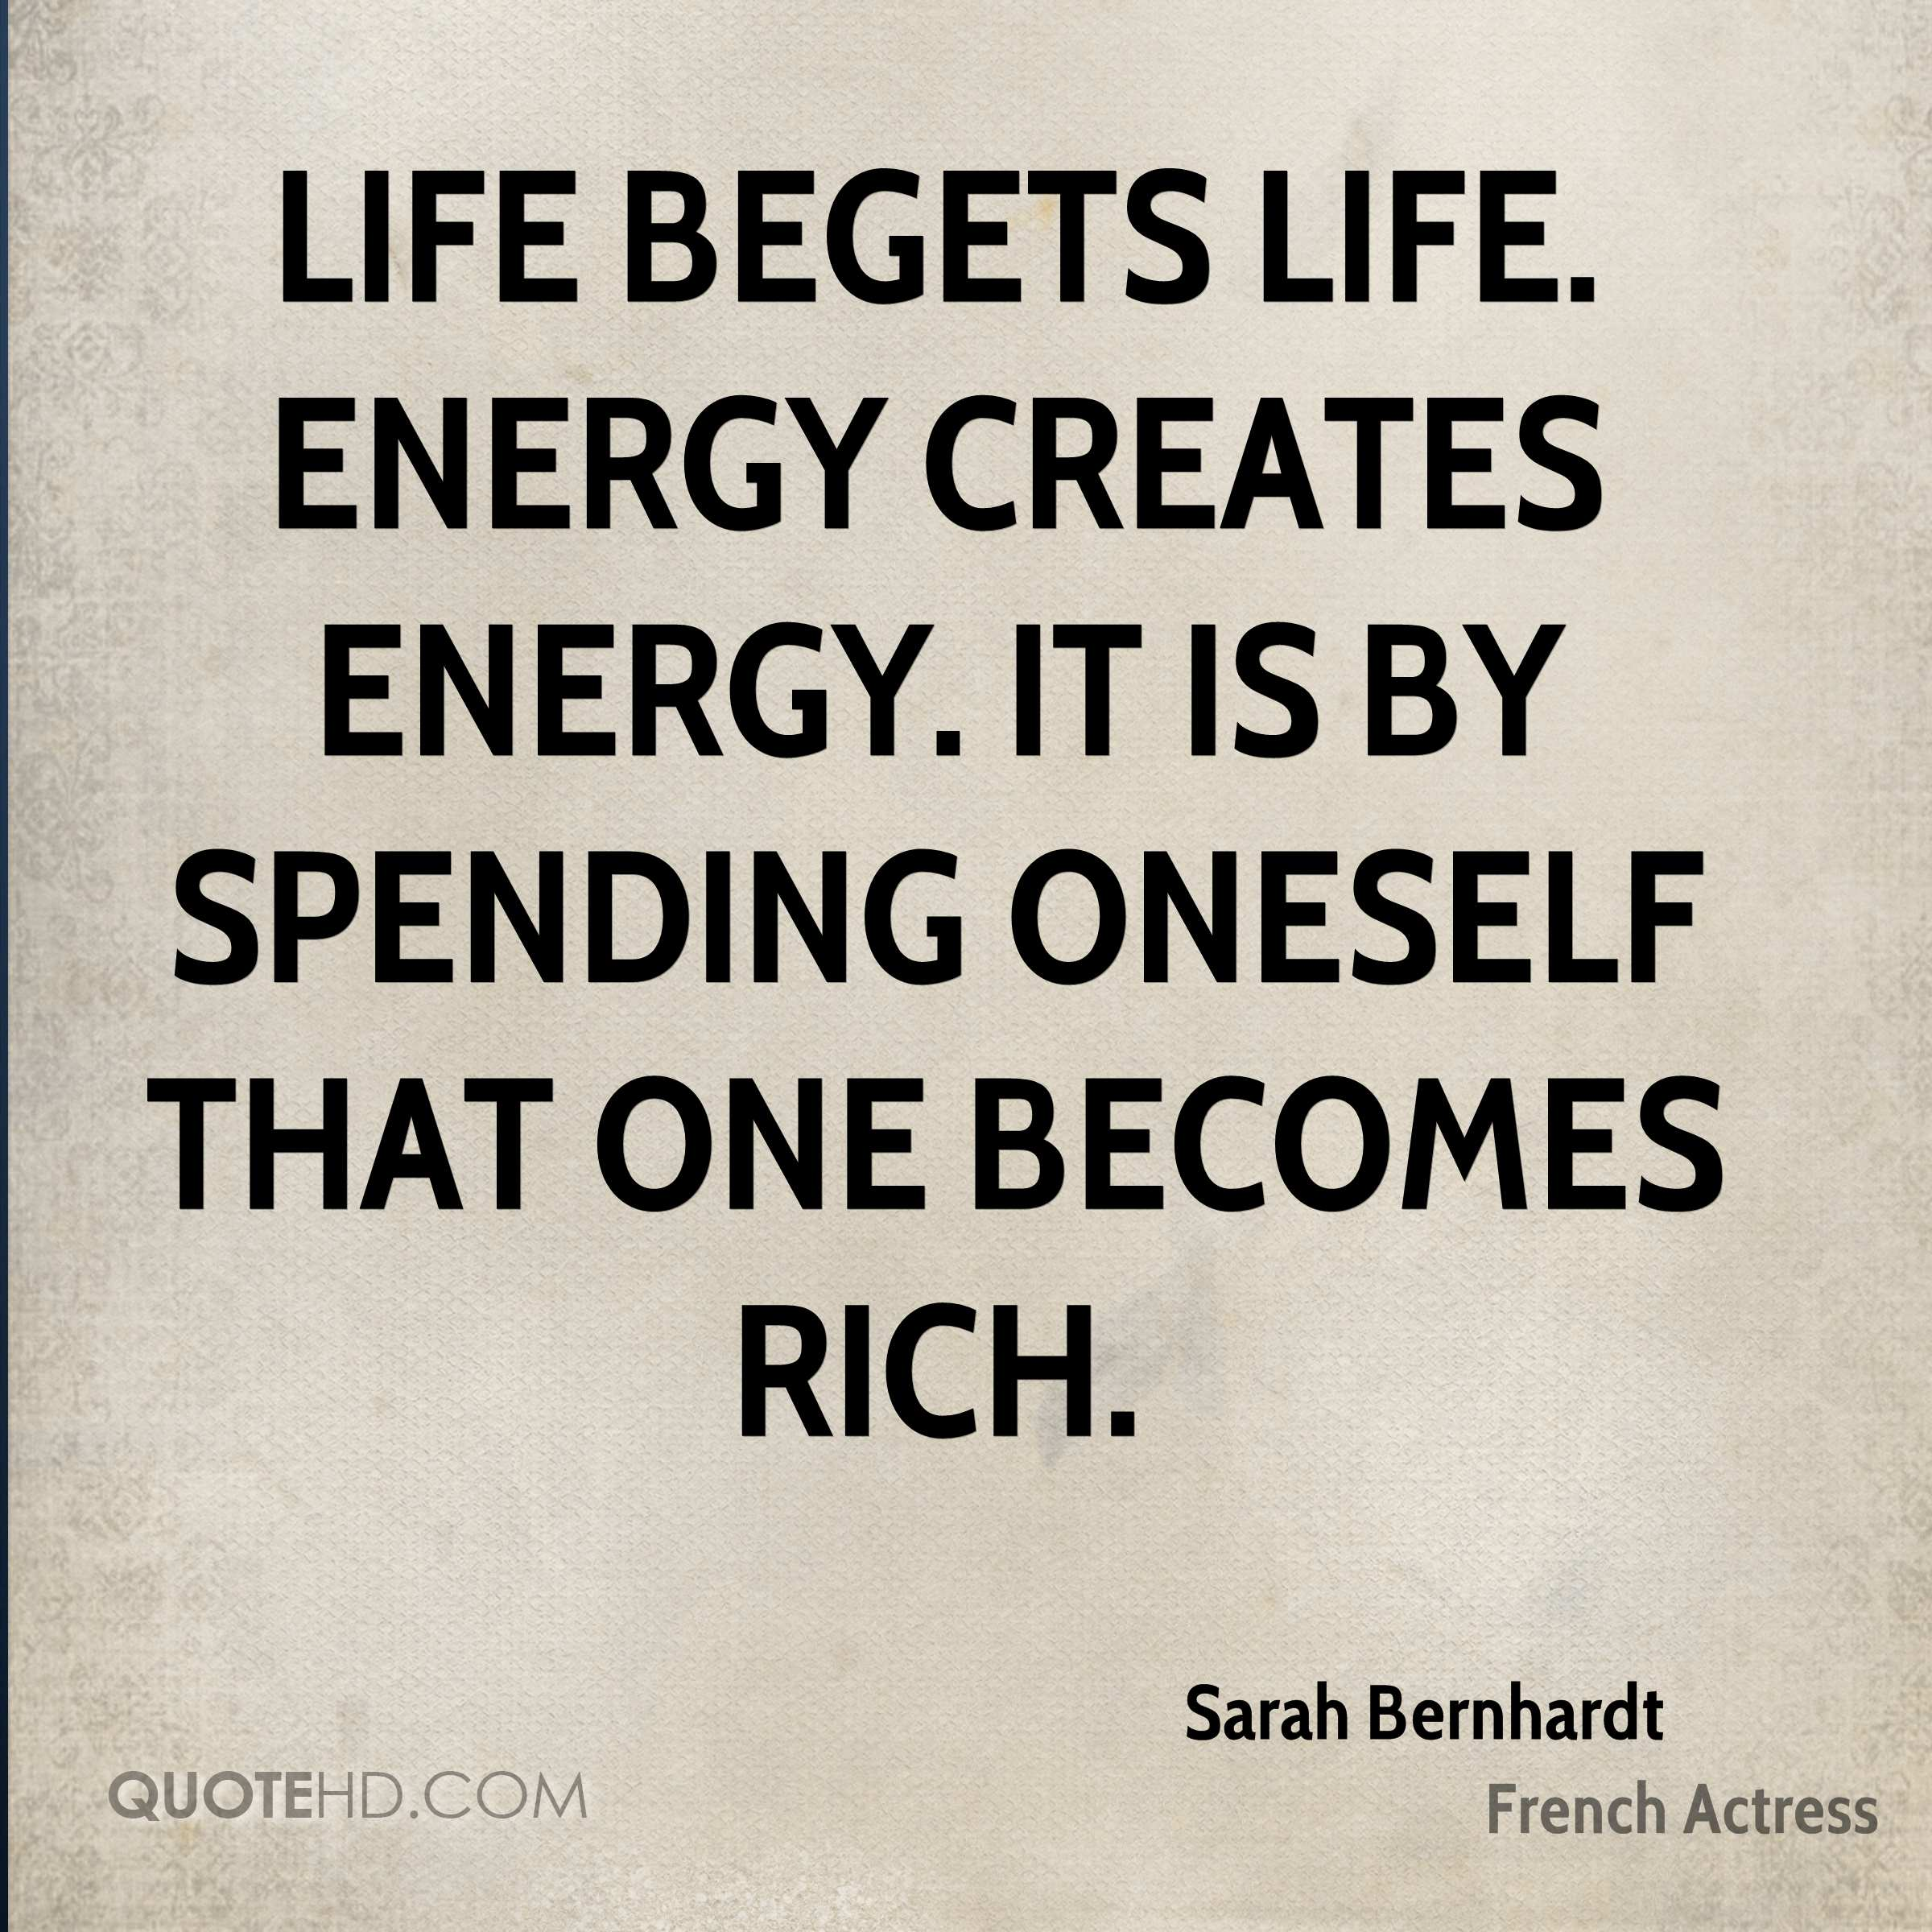 Delicieux Life Begets Life. Energy Creates Energy. It Is By Spending Oneself That One  Becomes